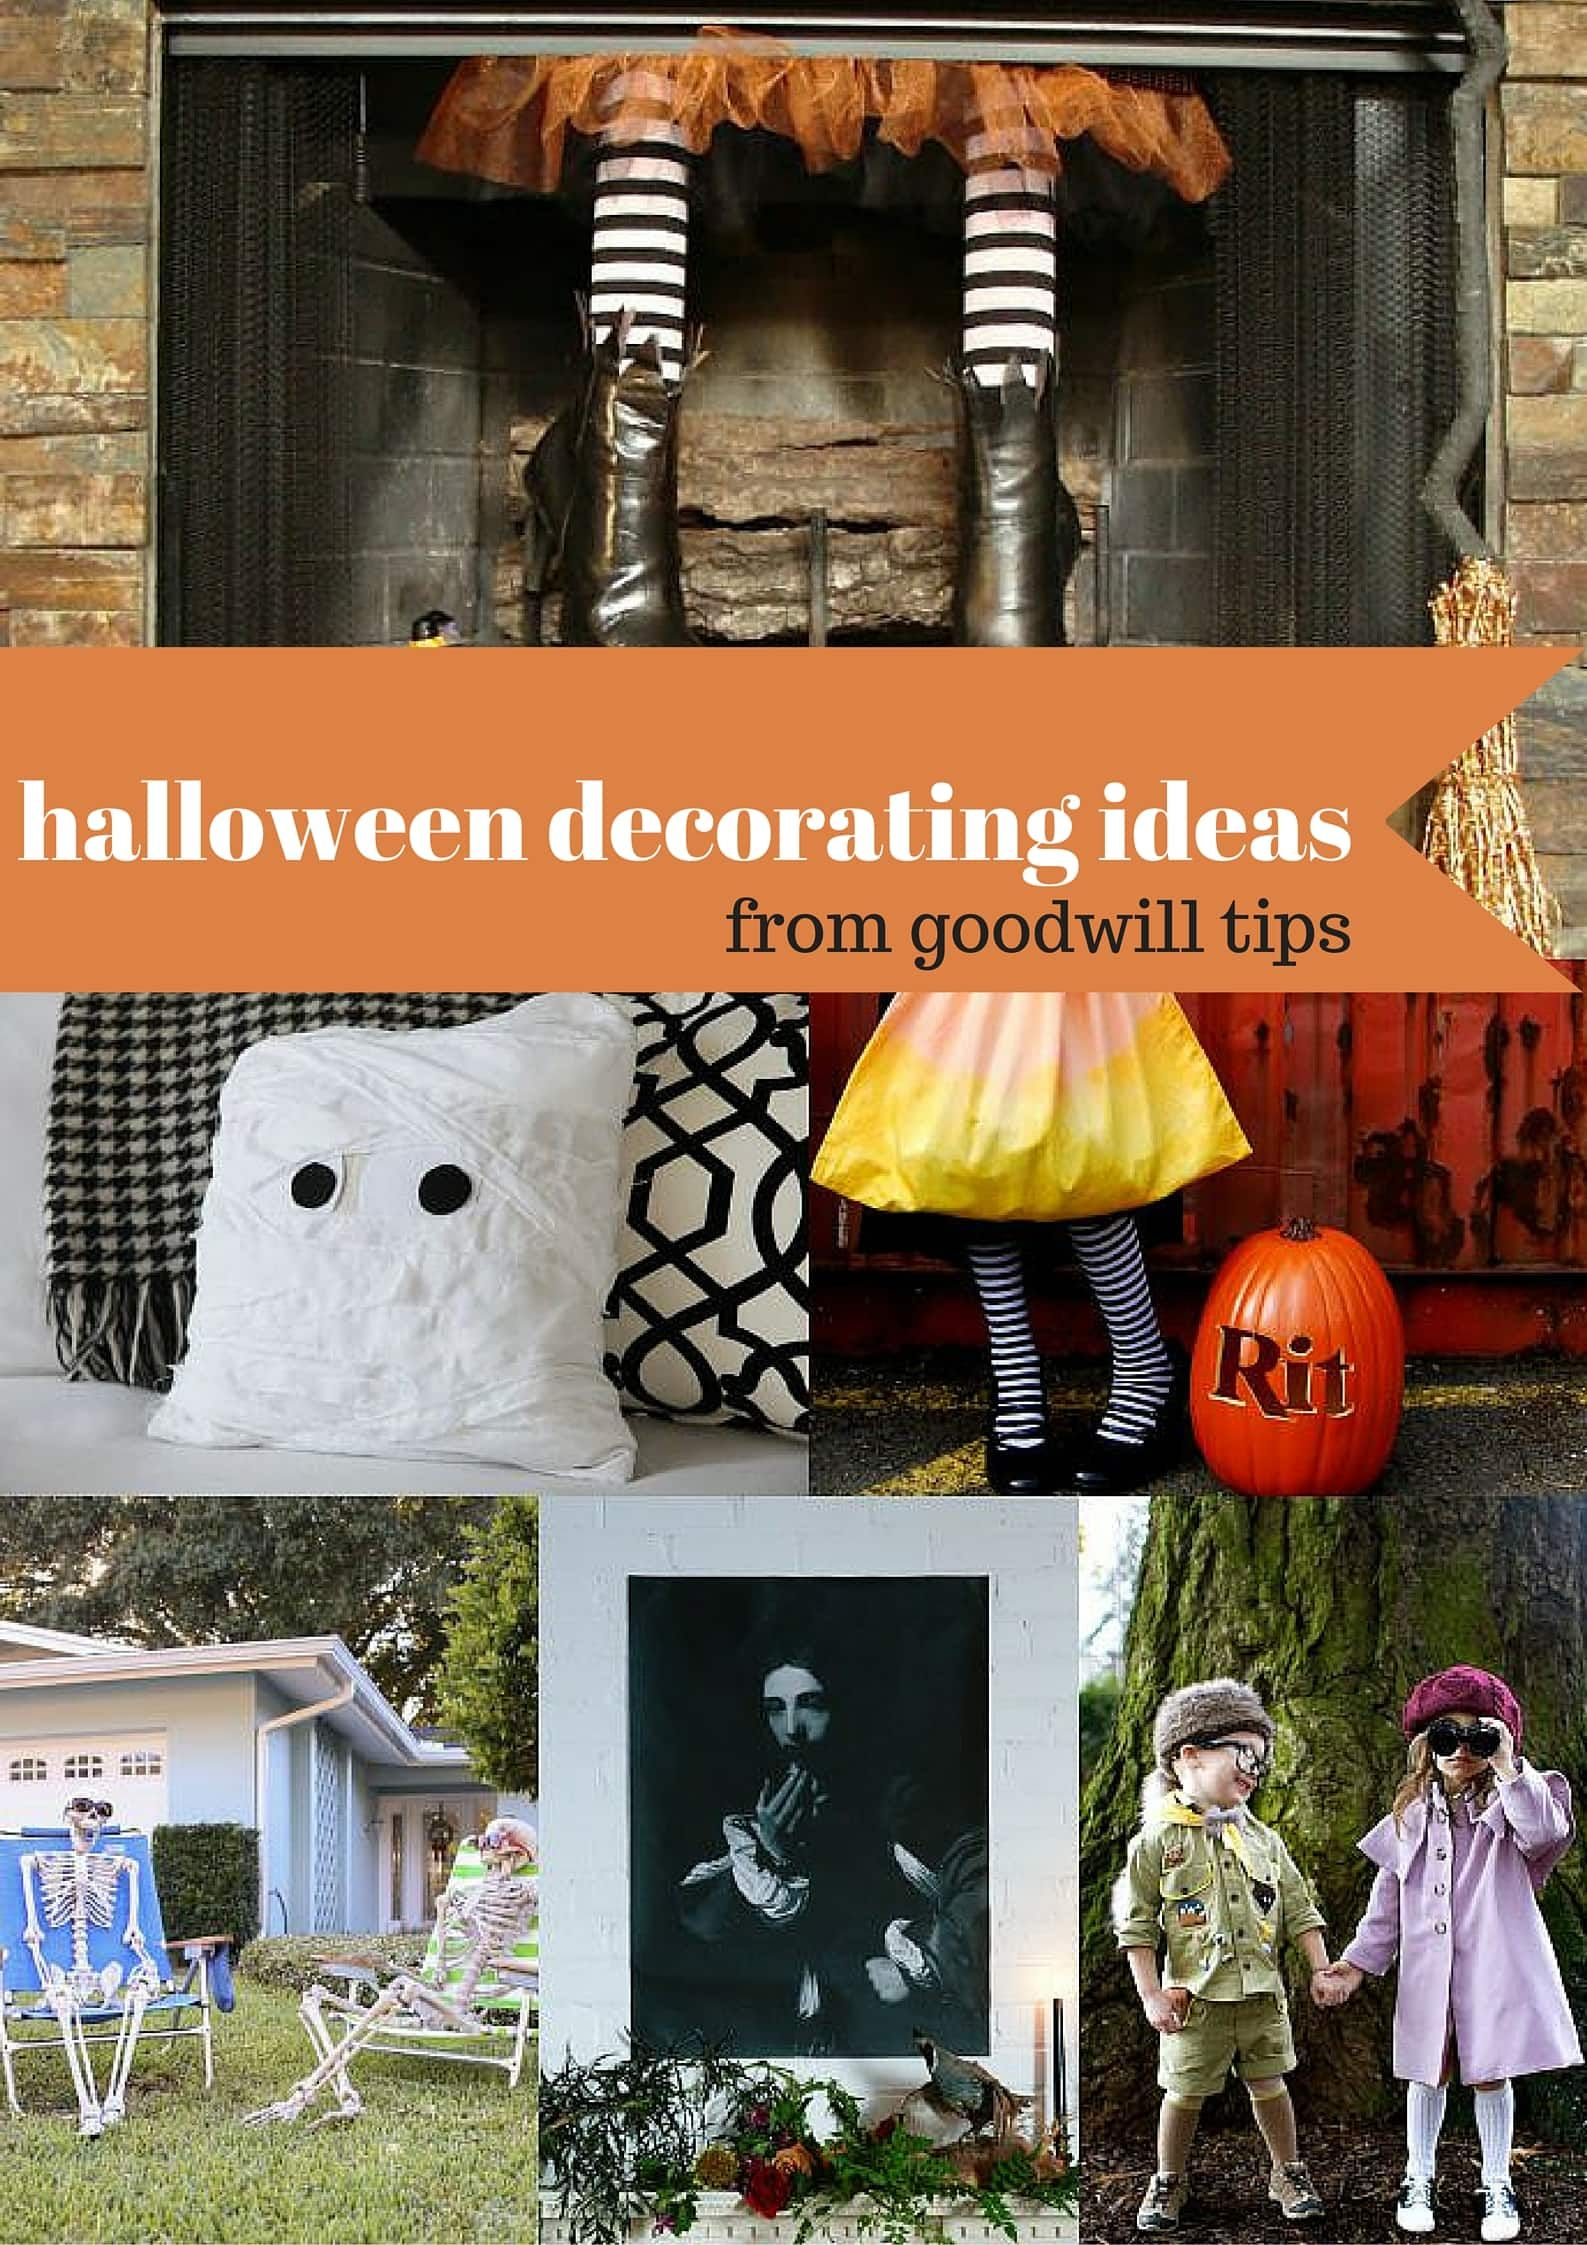 6 Festive Halloween Decorating Ideas From Momadvicecom